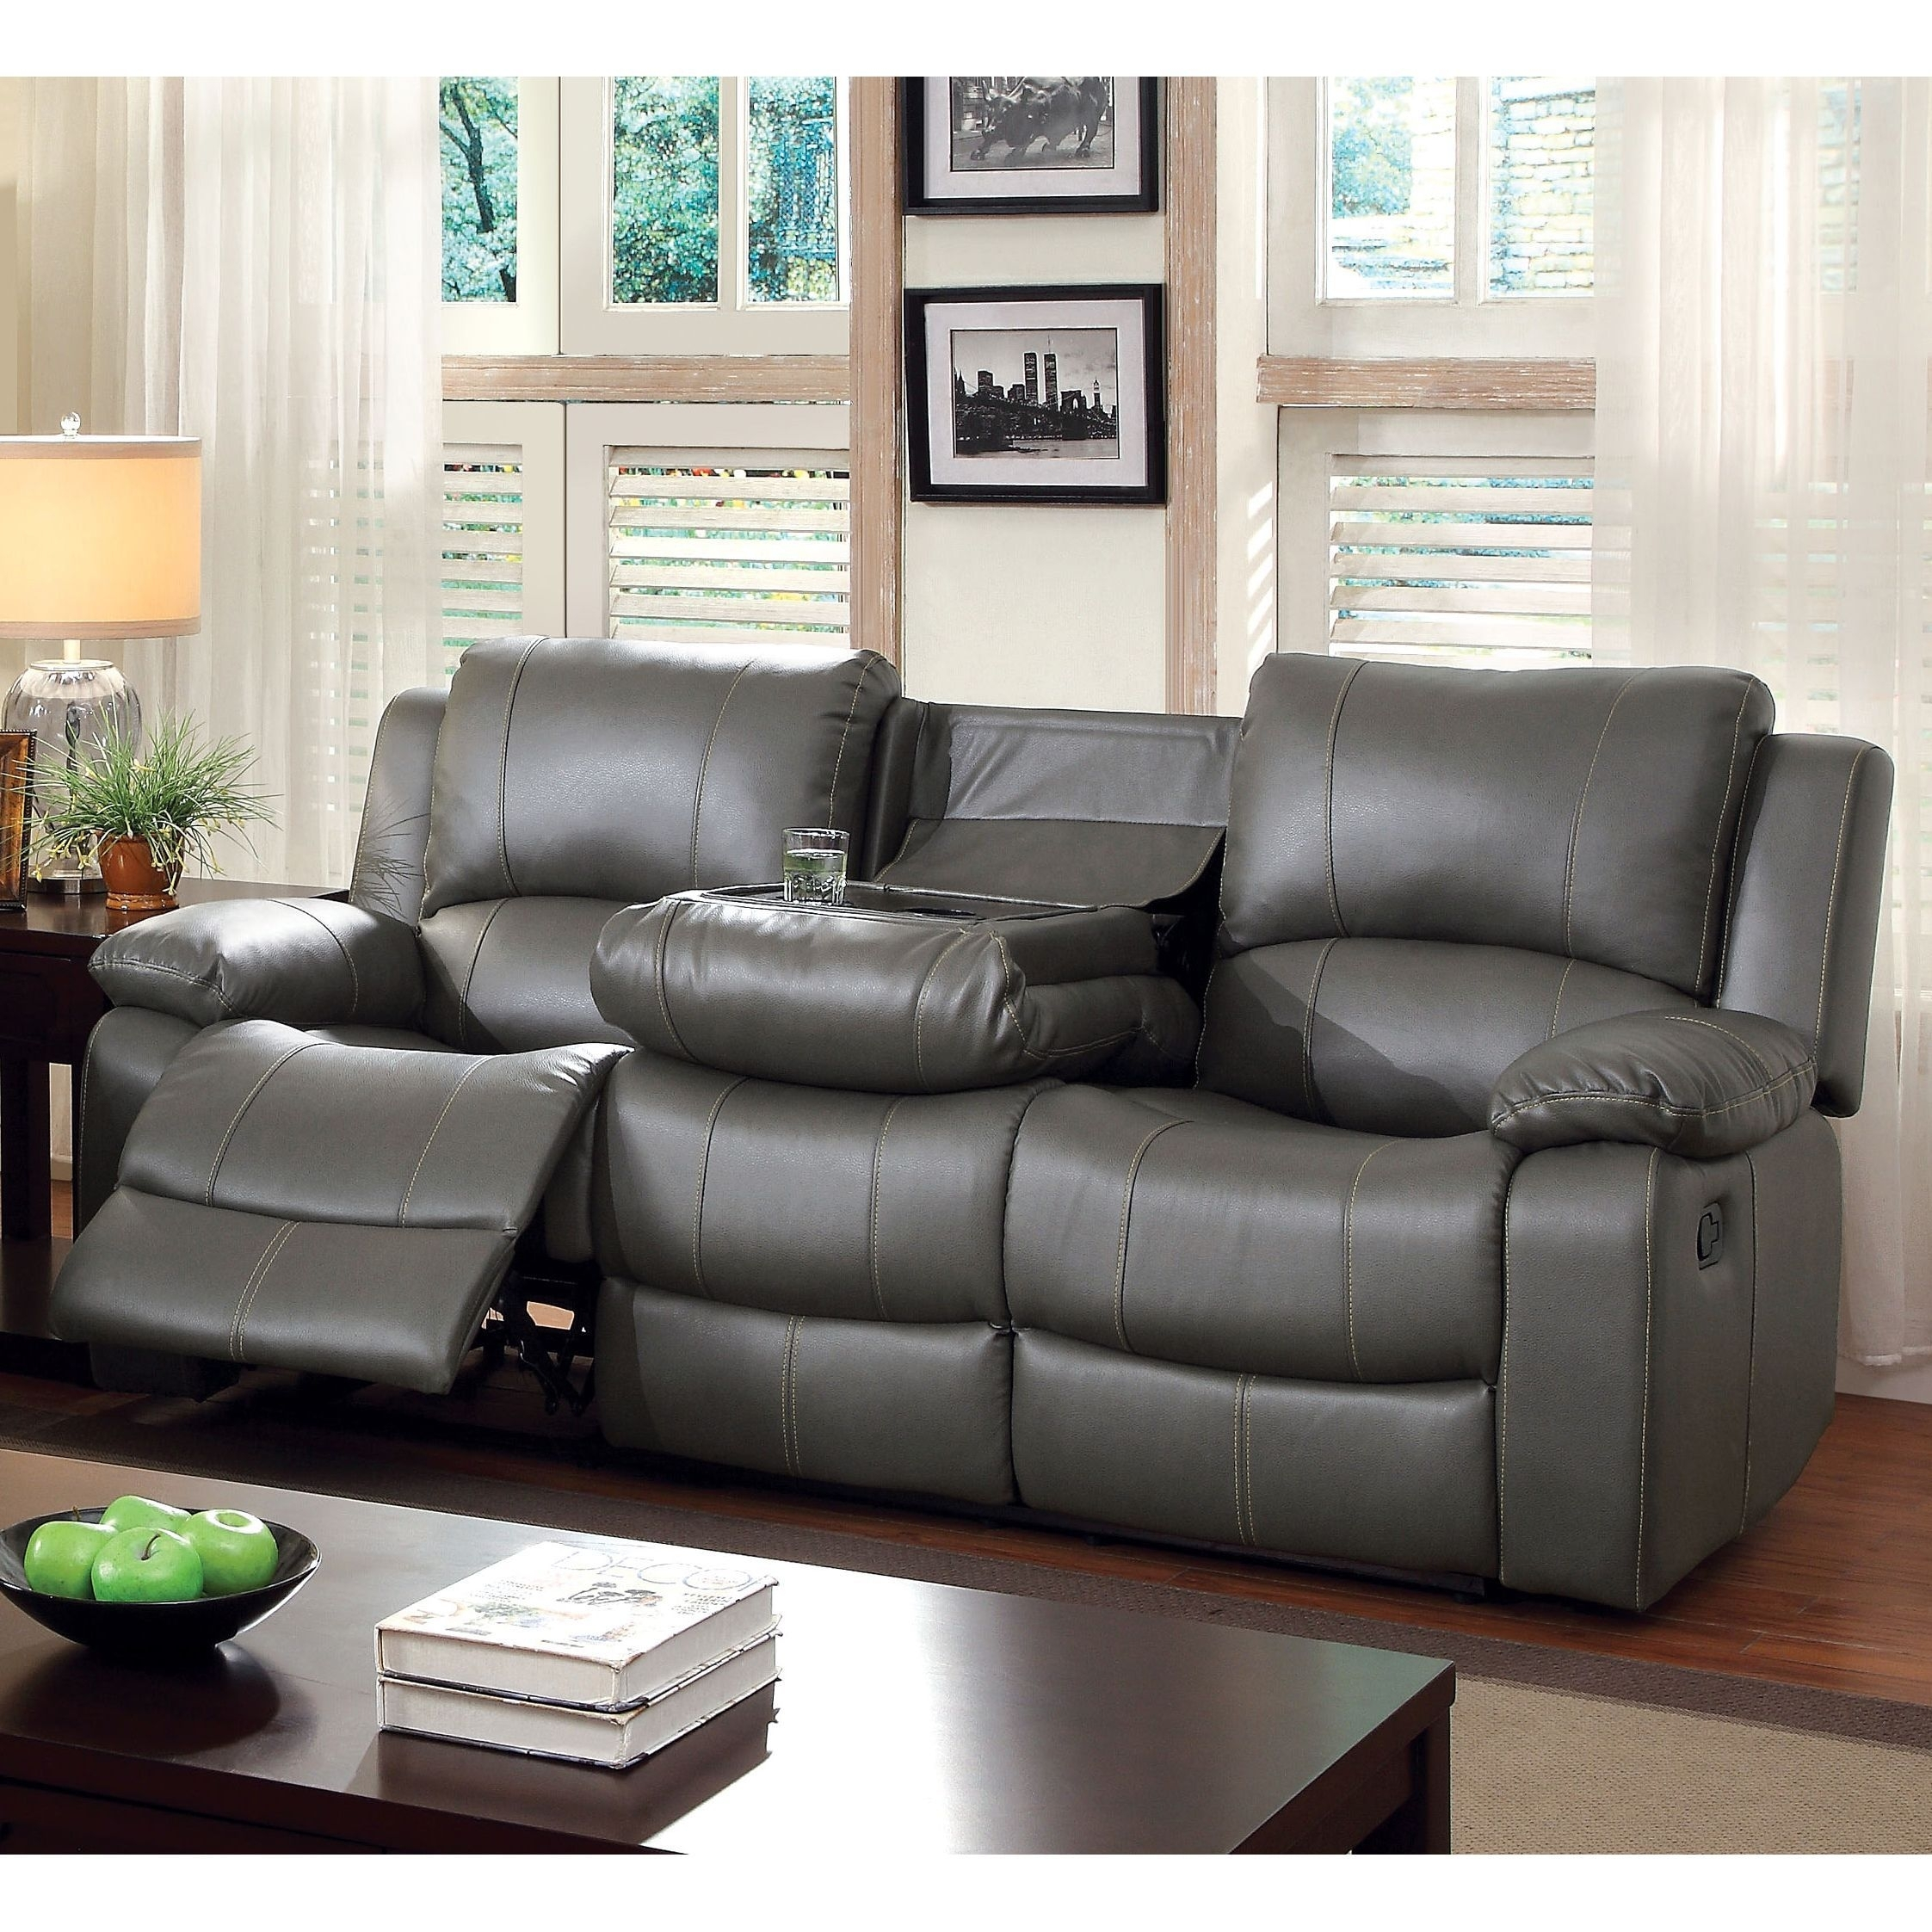 Furniture Of America Rembren Grey Bonded Leather Reclining Sofa Regarding Marcus Oyster 6 Piece Sectionals With Power Headrest And Usb (View 7 of 30)